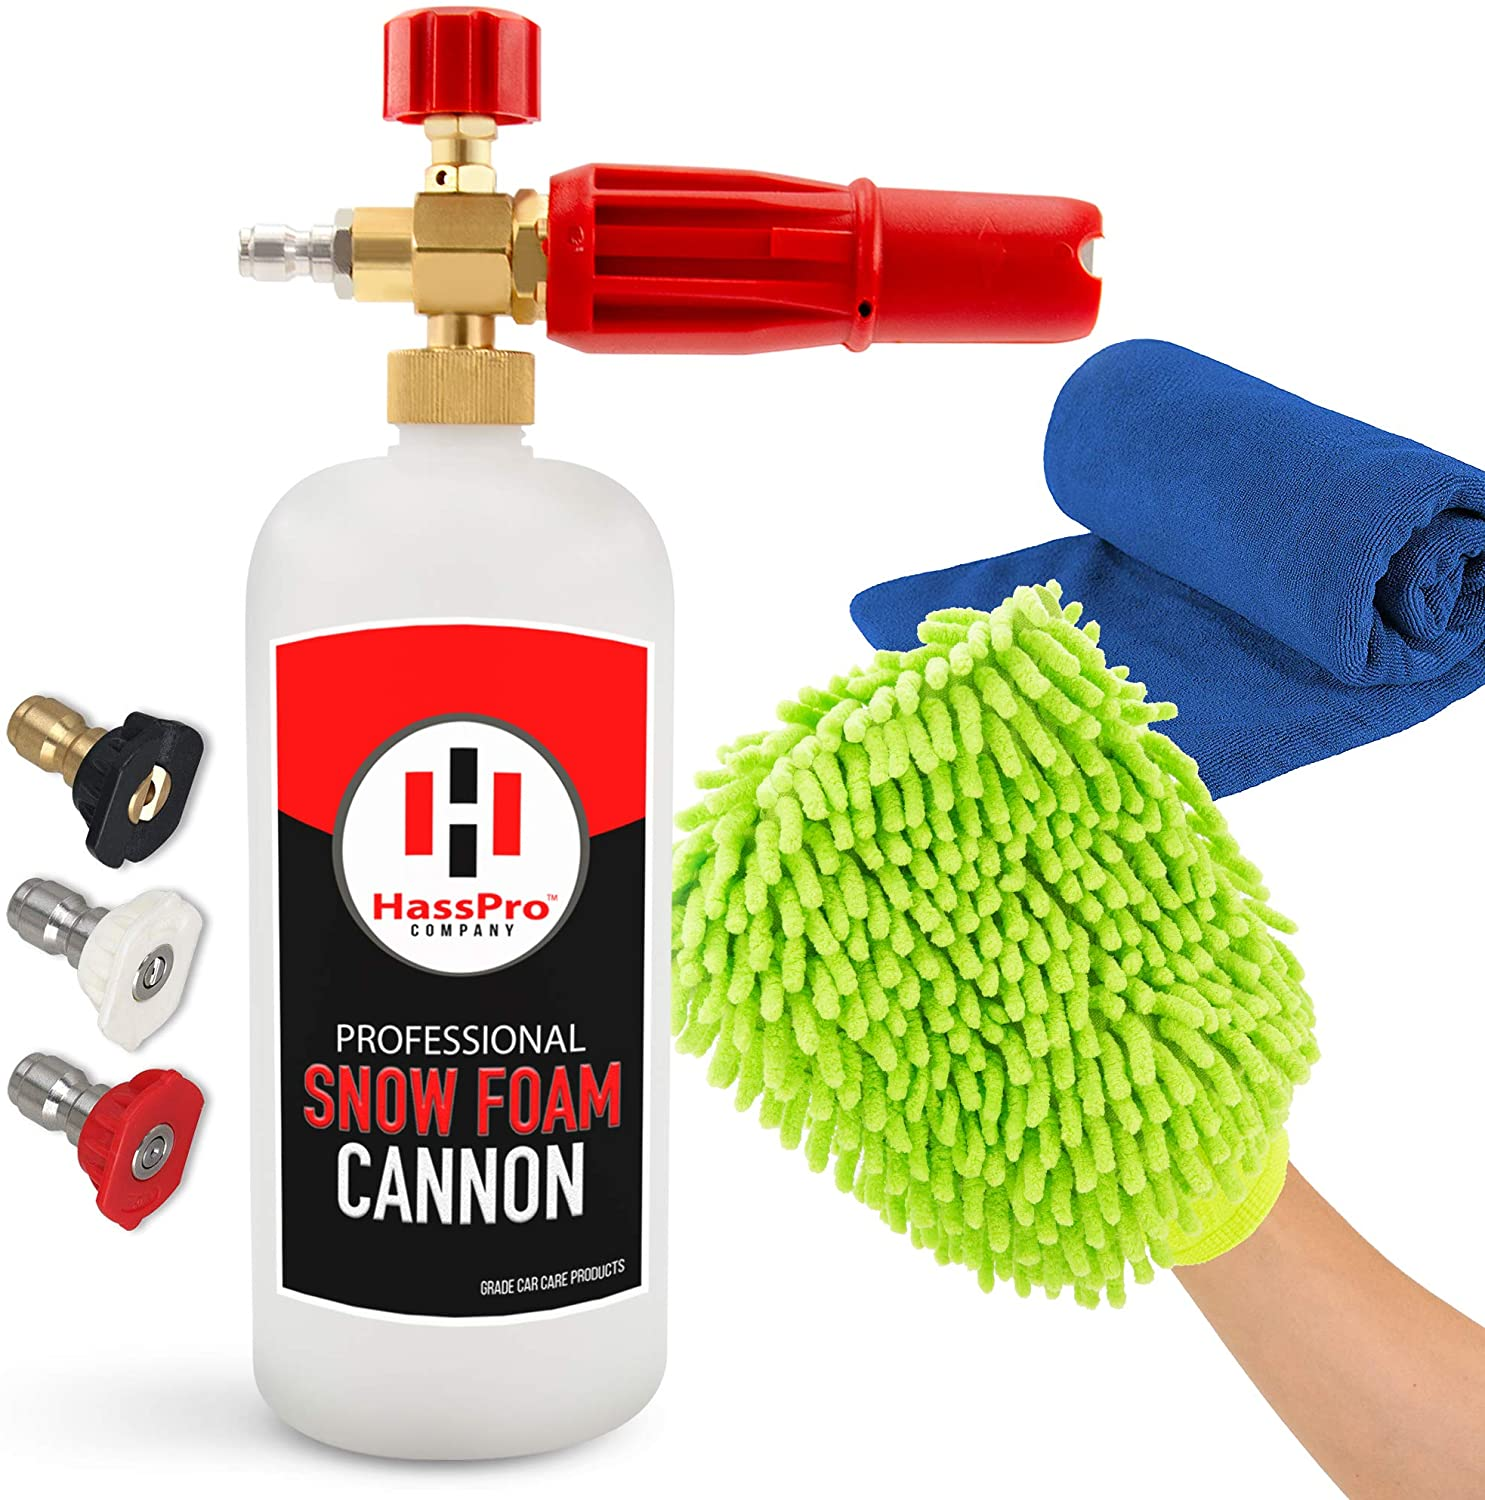 HassPro Premium Quality 1LT Bottle Foam Cannon